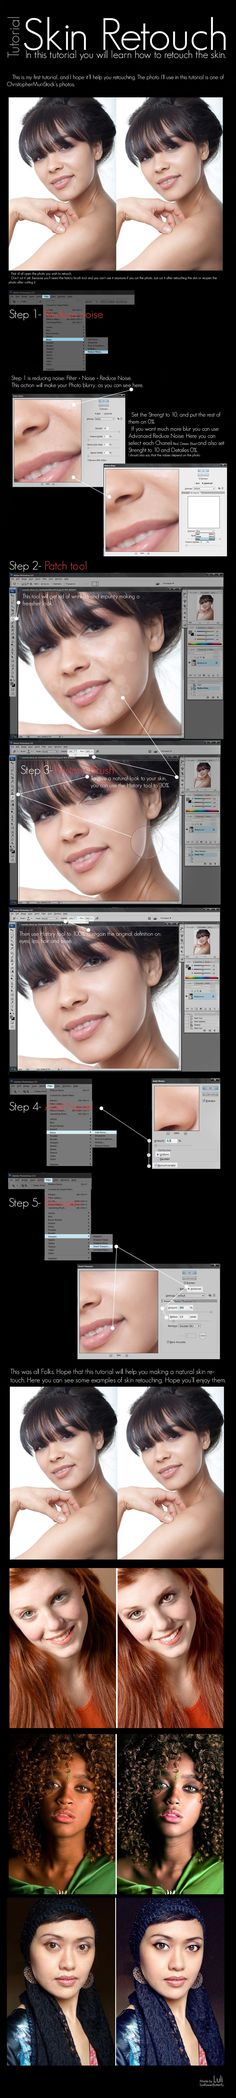 Skin Retouch Tutorial by ~Lore03 on deviantART #photography tips